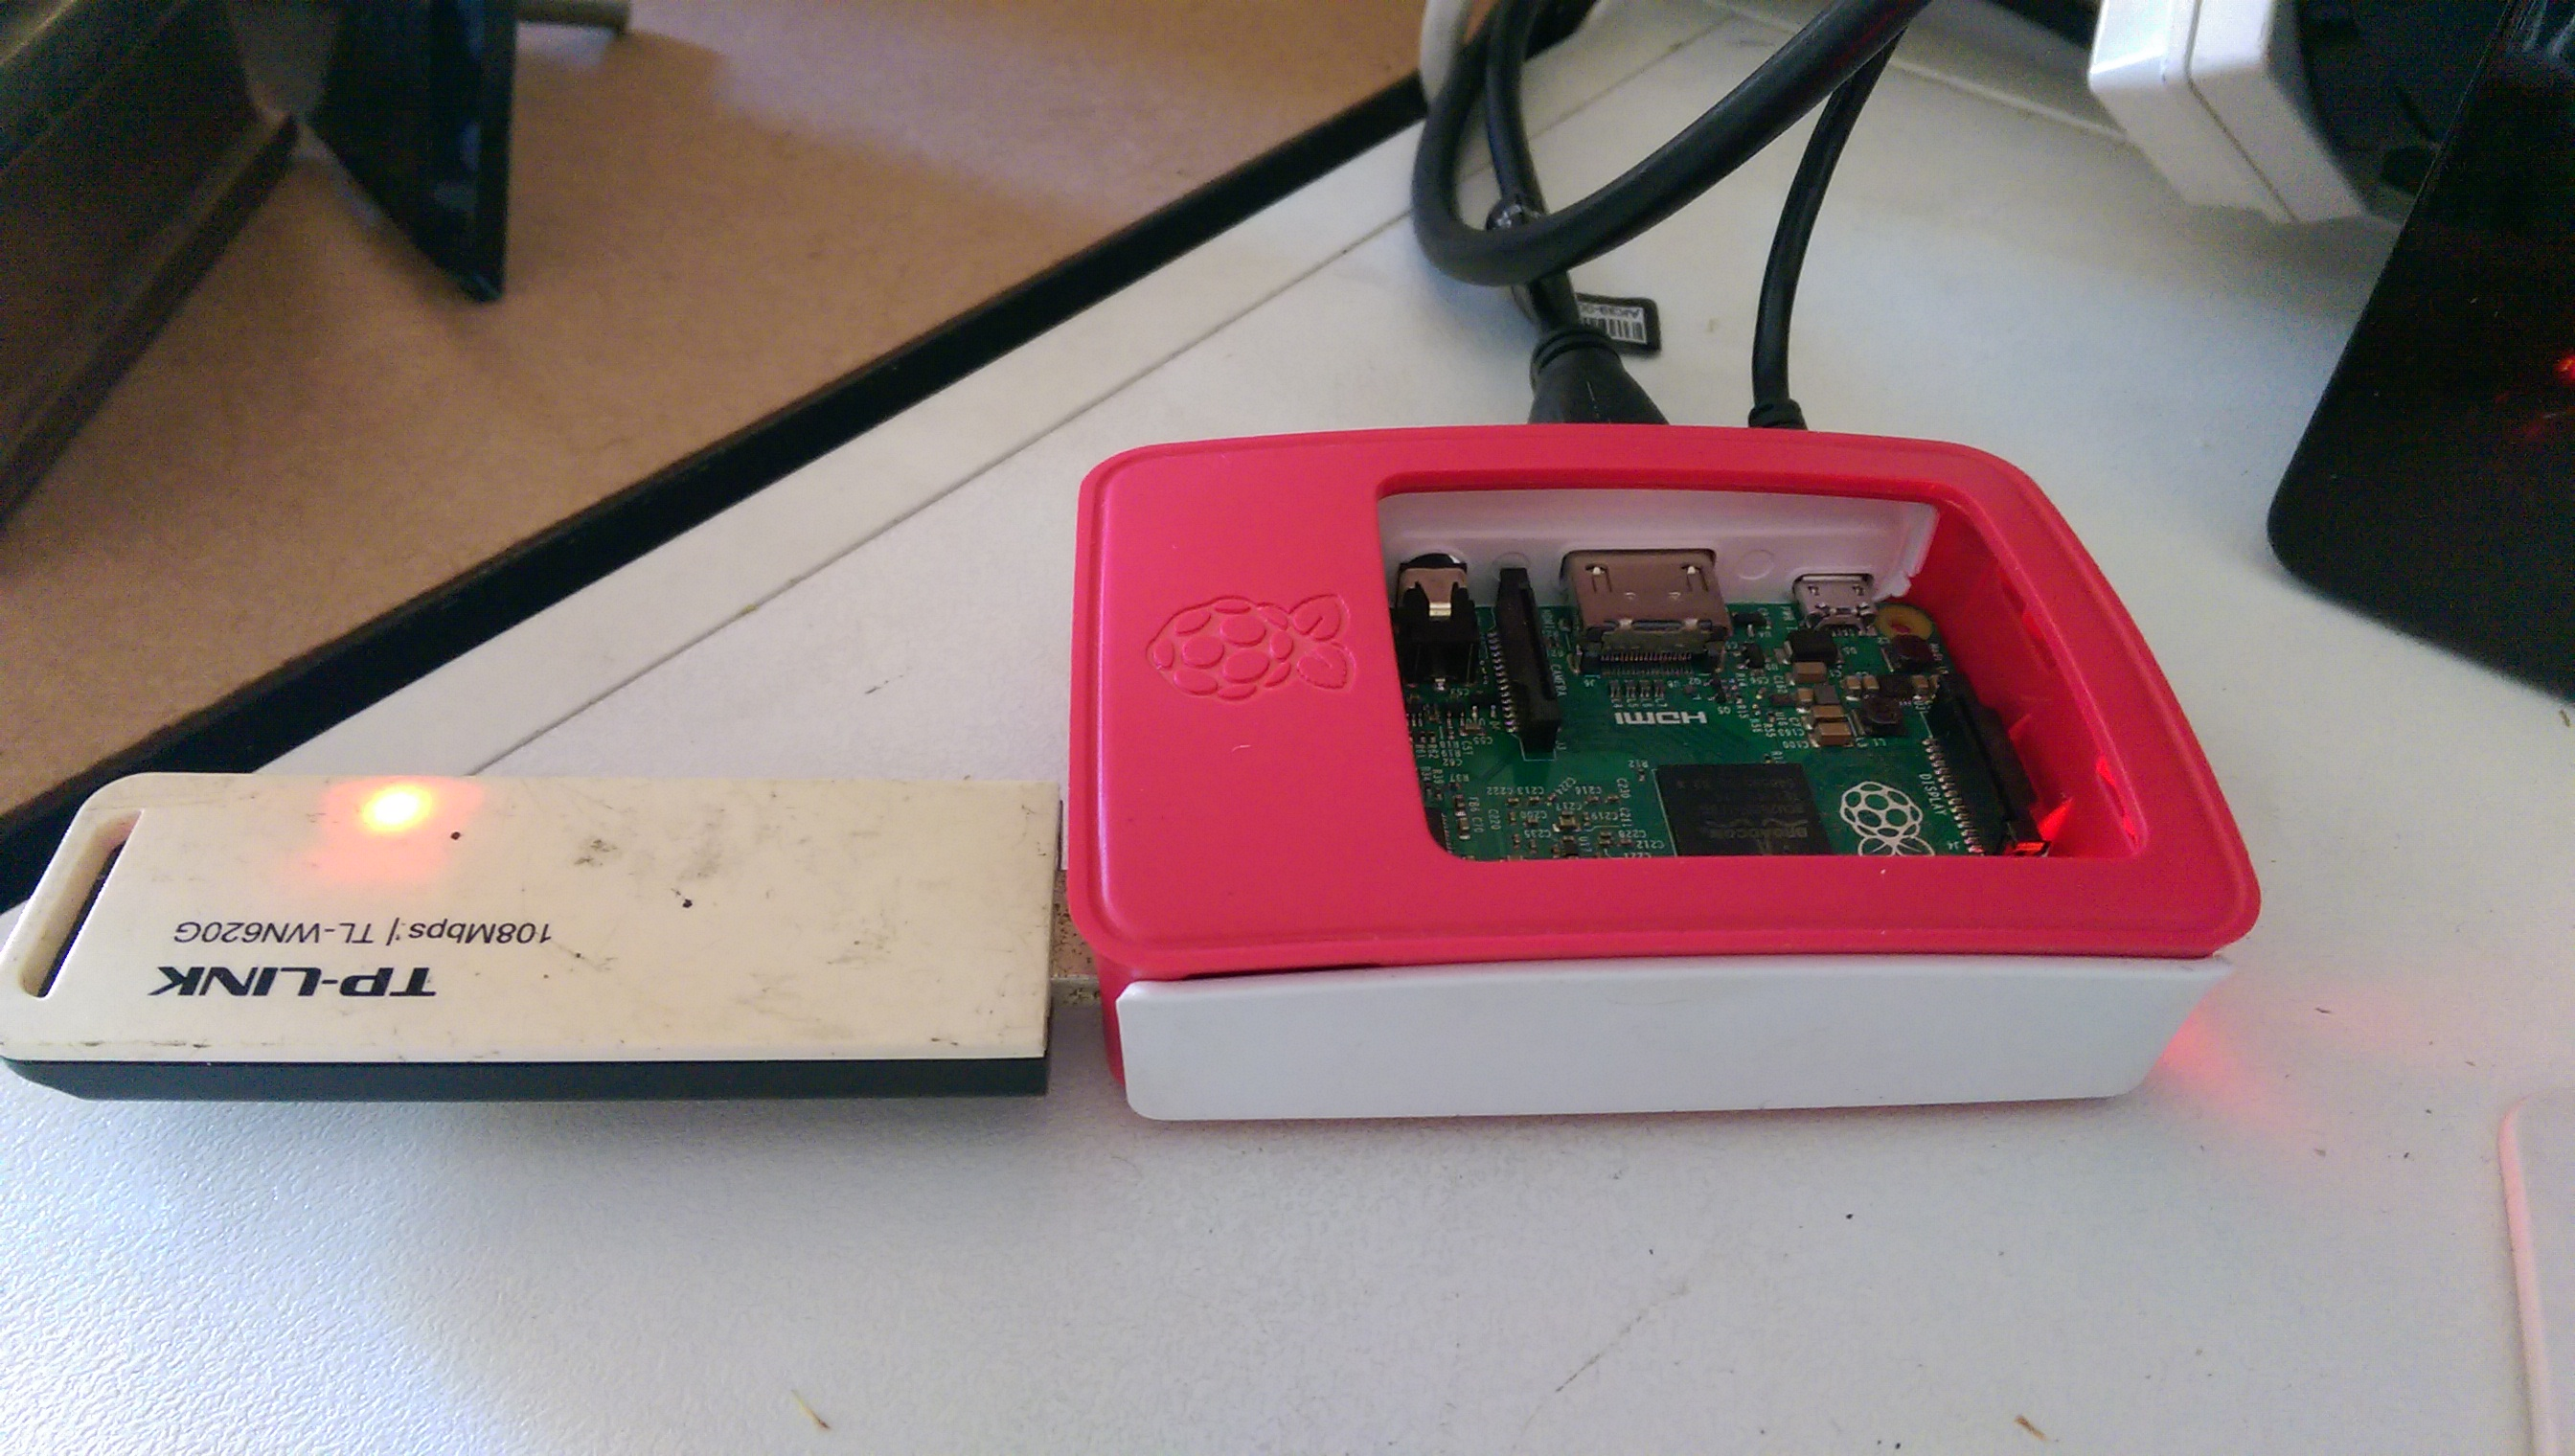 Raspberry Pi Model B, in the offical case and an USB Wireless LAN stick